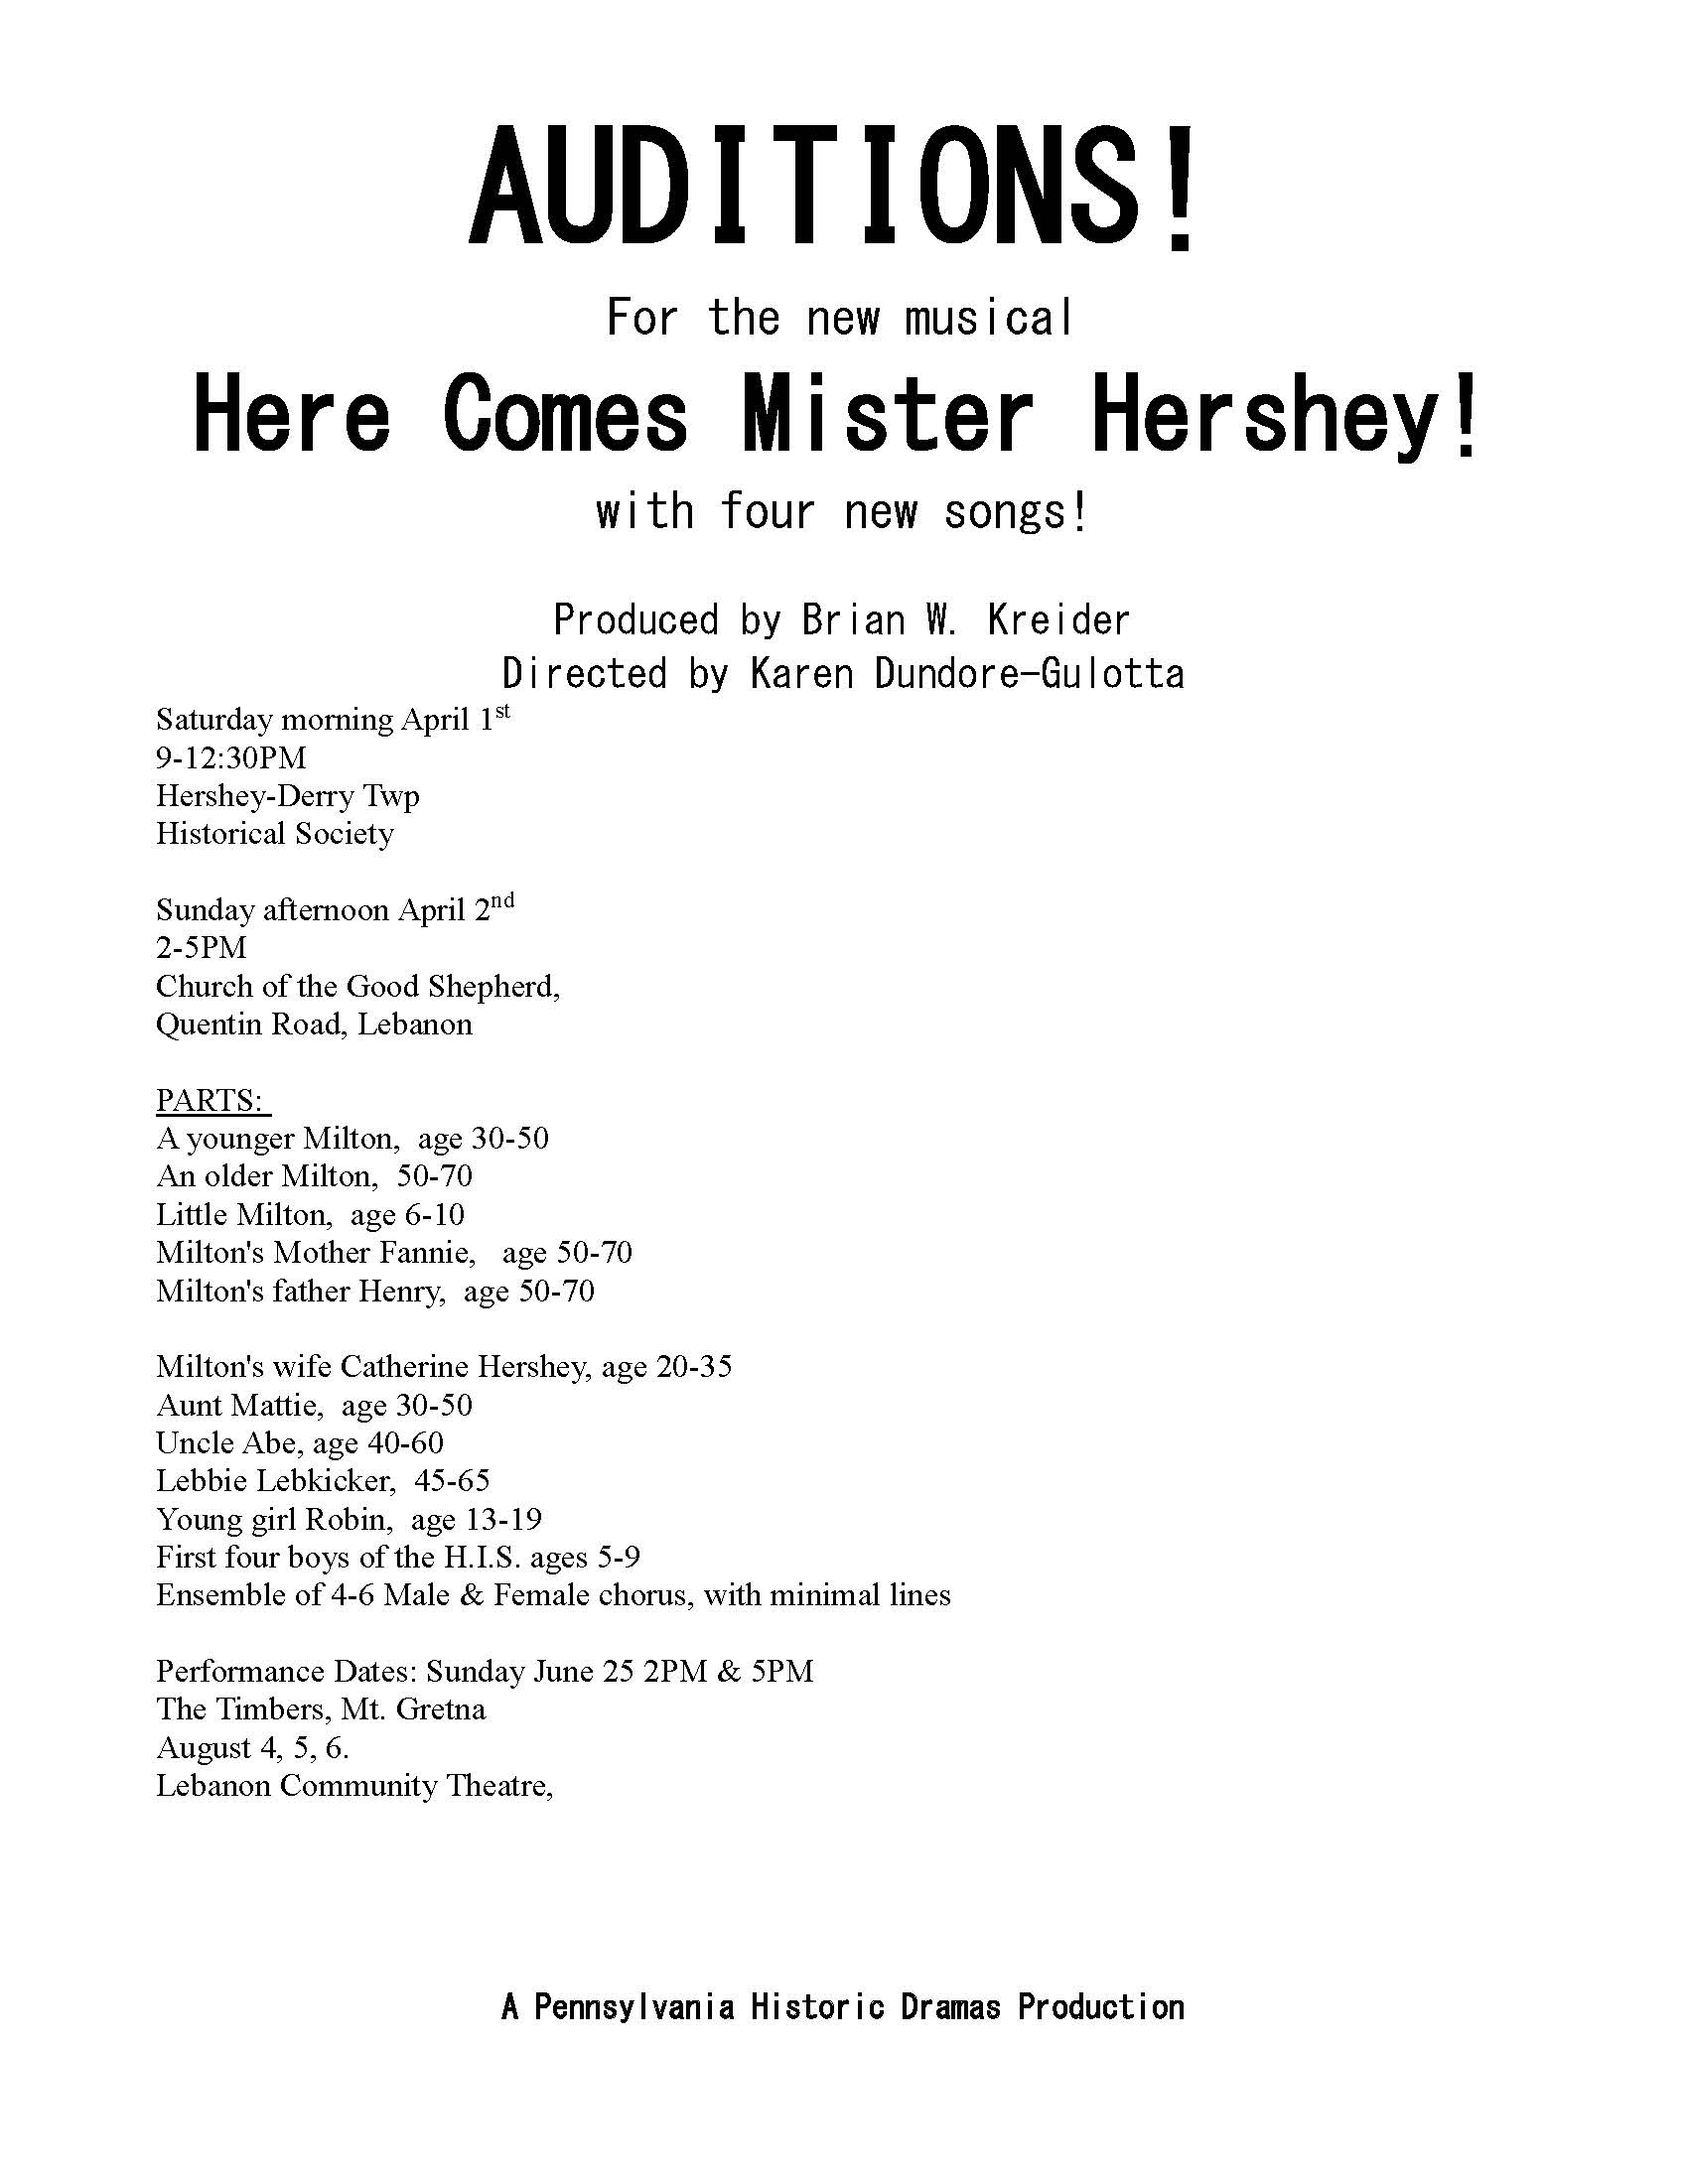 Auditions!!  Here Comes Mr Hershey – April 1 & April 2